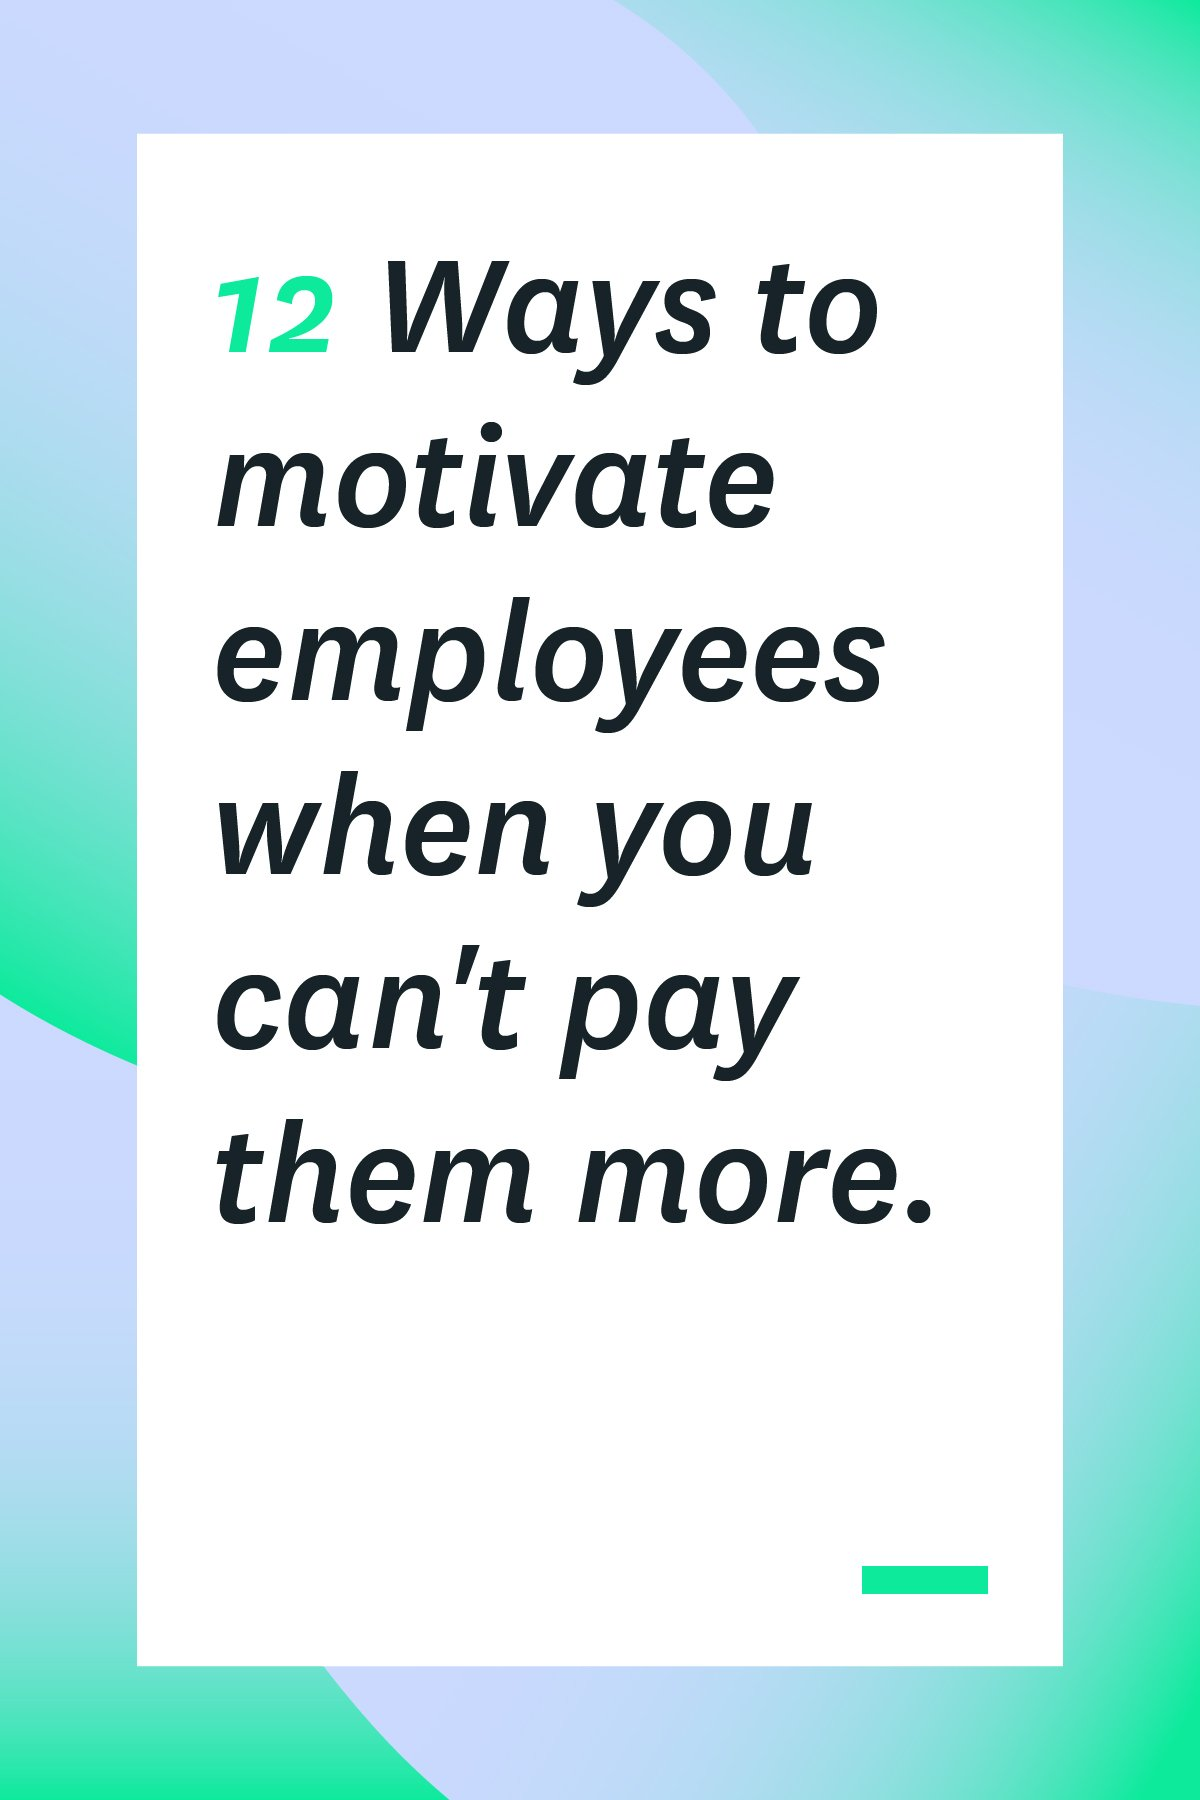 Sure, money can motivate your employees, but sometimes you can't afford to pay people more or offer huge bonuses. Here are 12 other ways you can motivate employees. Some of them are even more effective than money!